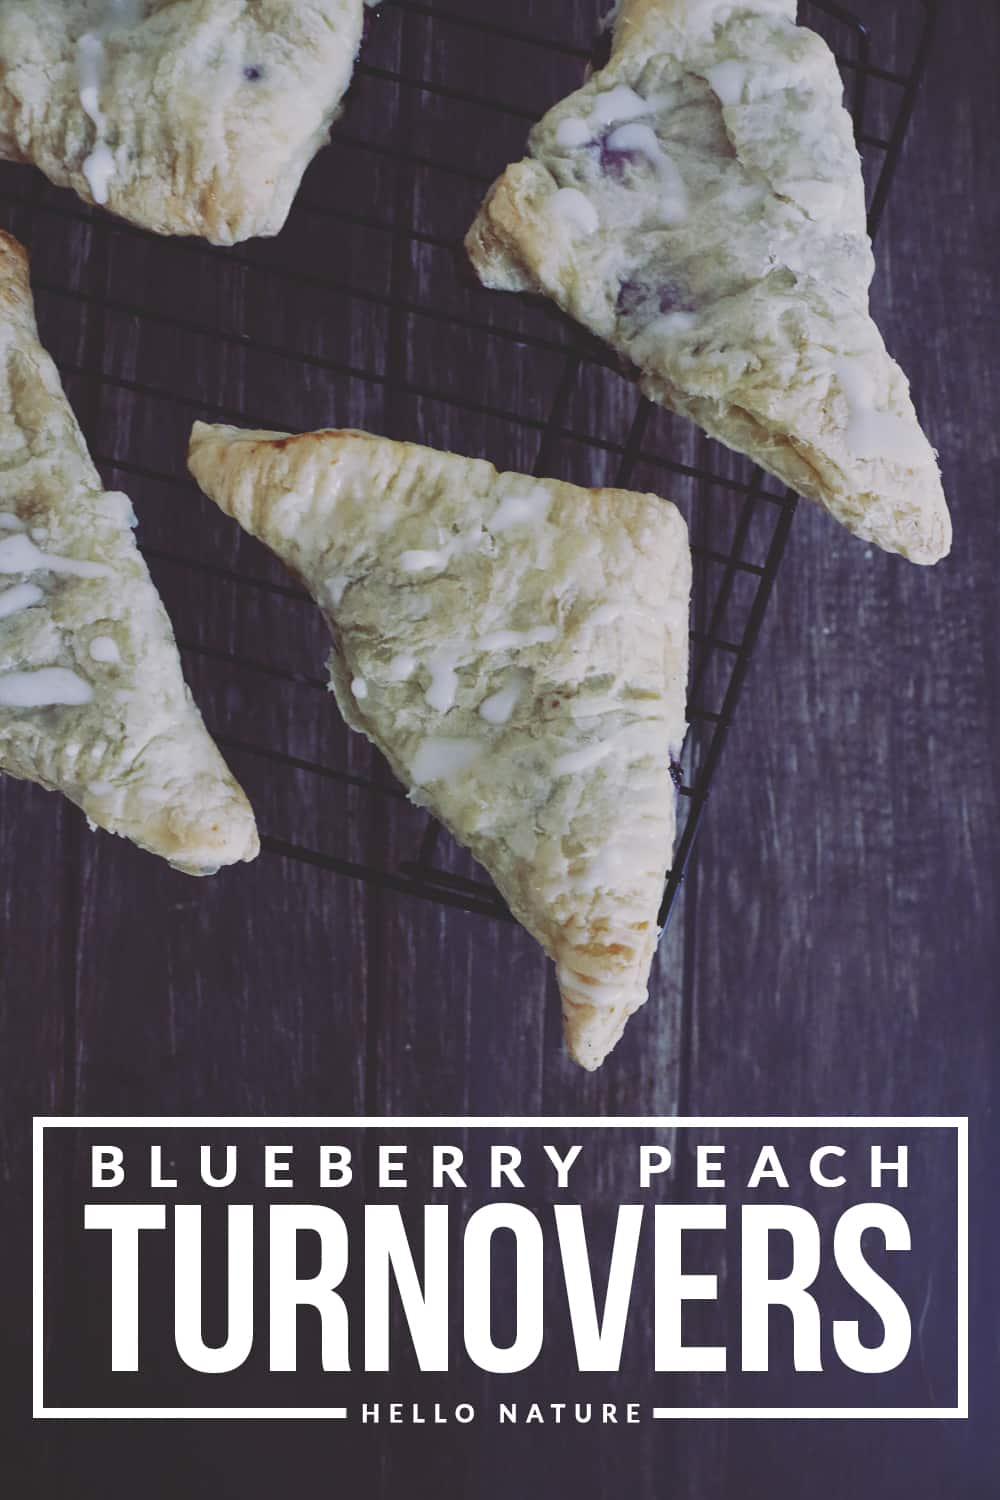 These blueberry peach turnovers have the perfect summertime flavor combination. With sweet blueberries and juicy peaches, you can't go wrong!